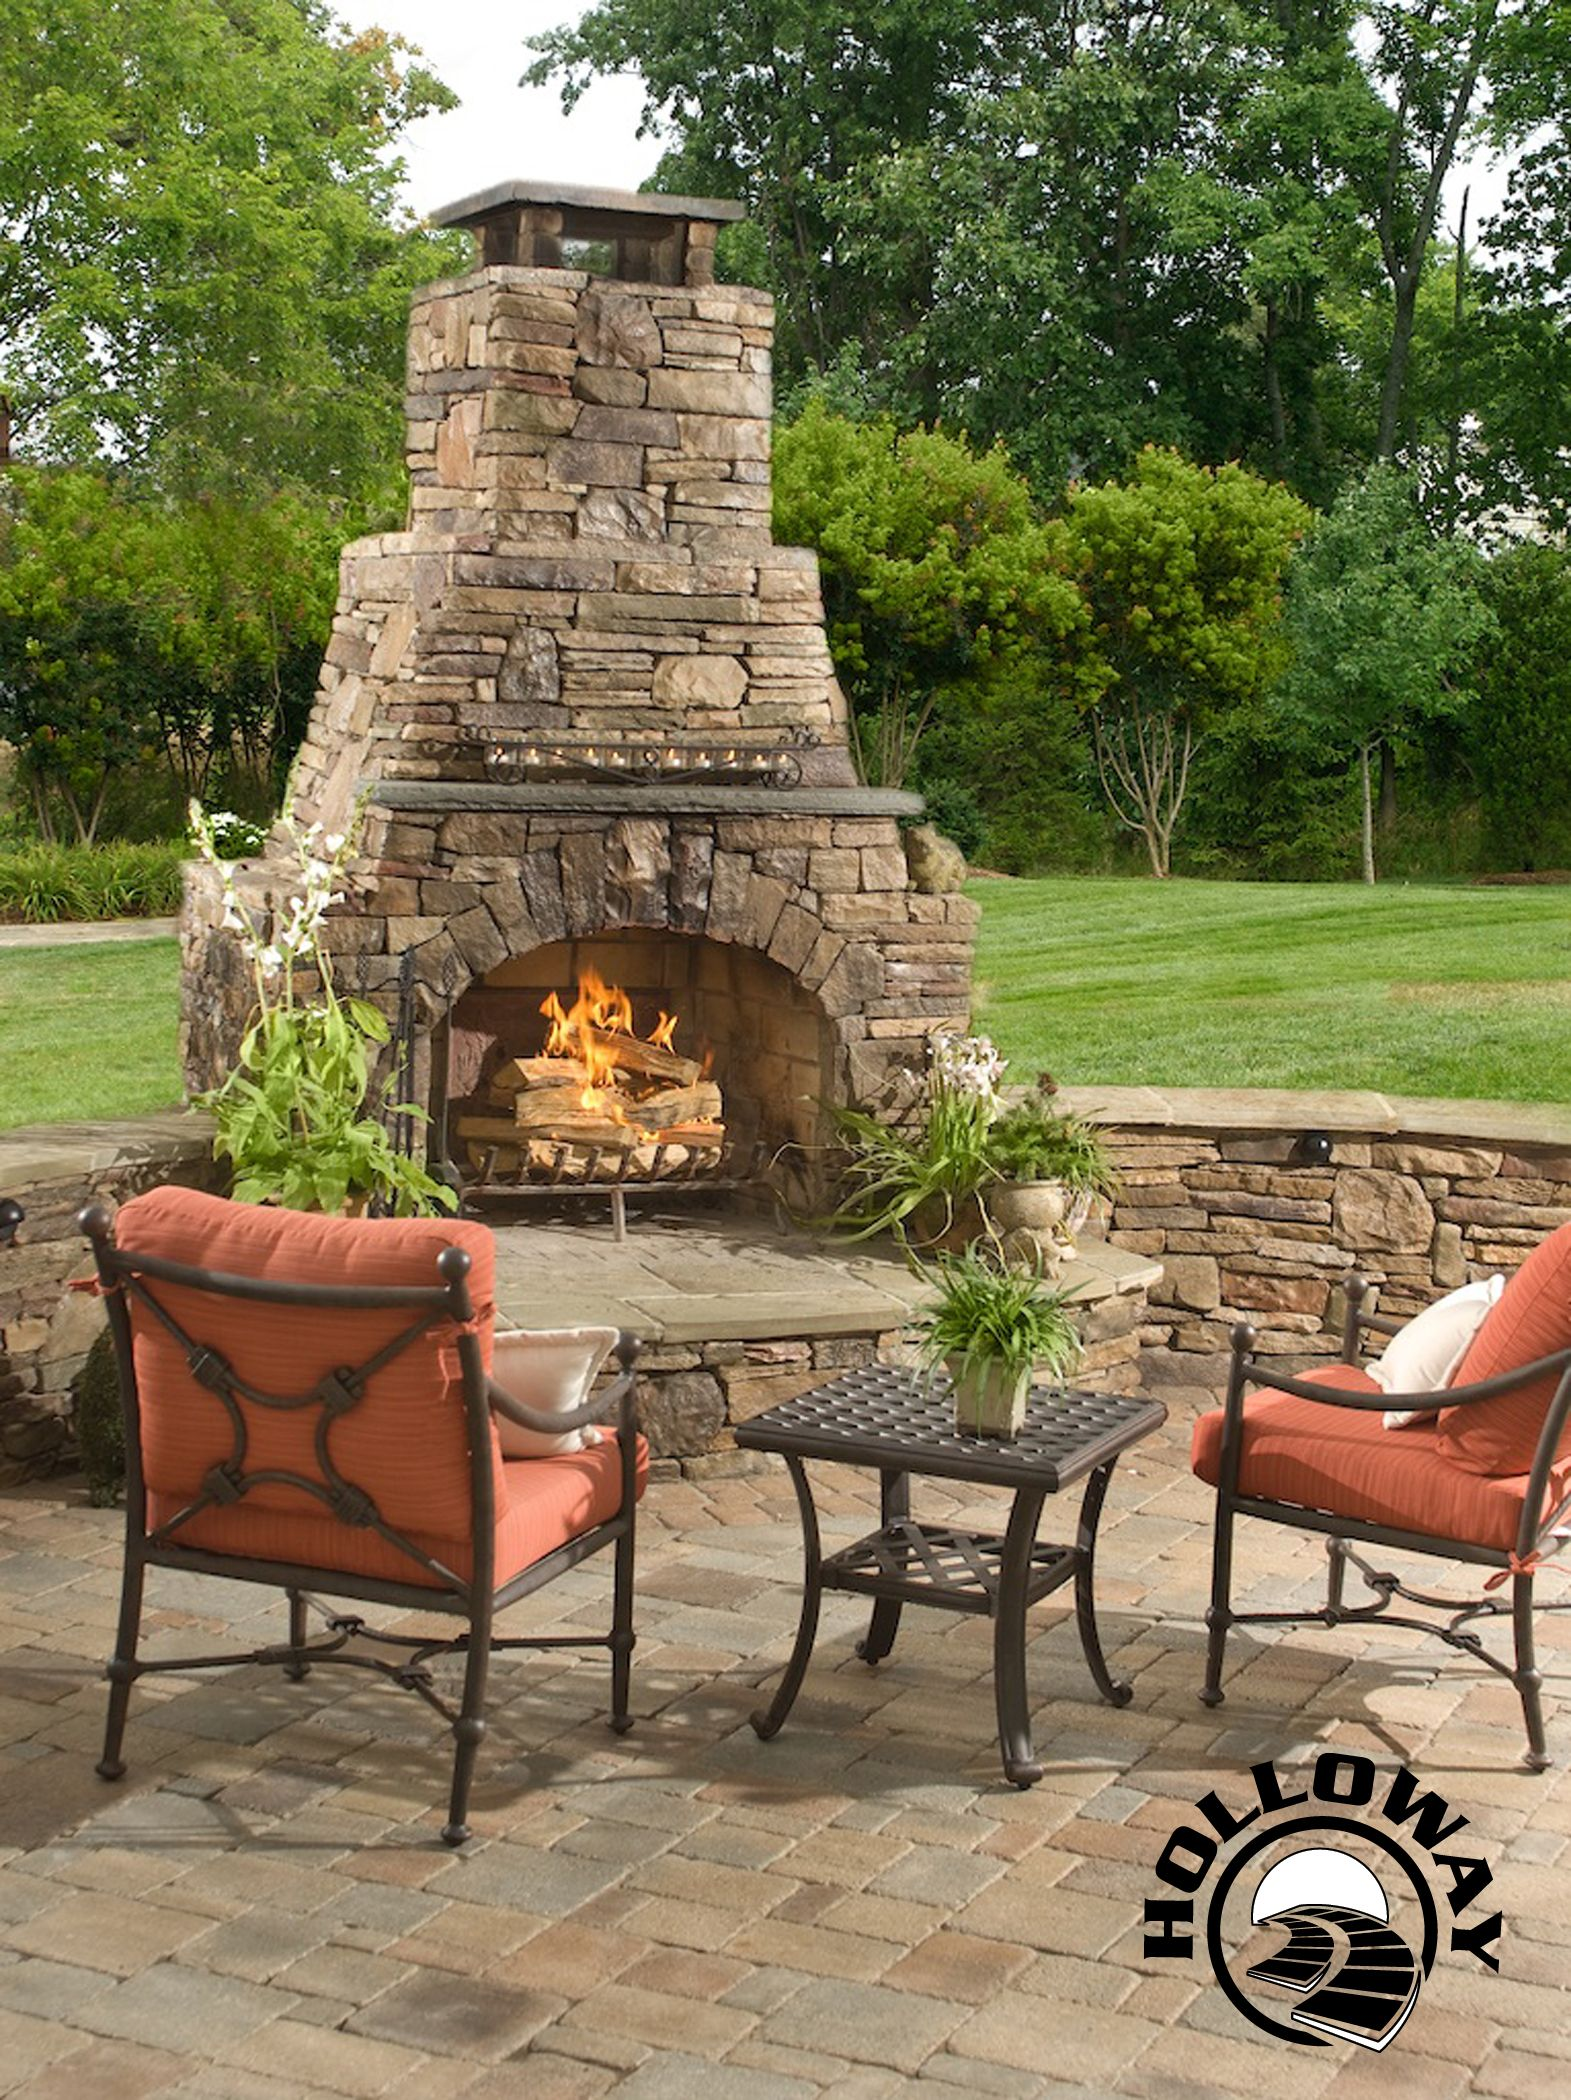 "Outdoor Fireplace:  72"" custom masonry outdoor fireplace with chimney extension. Fireplace features seating walls *************************************************~Designed & Built by Holloway Company Inc"